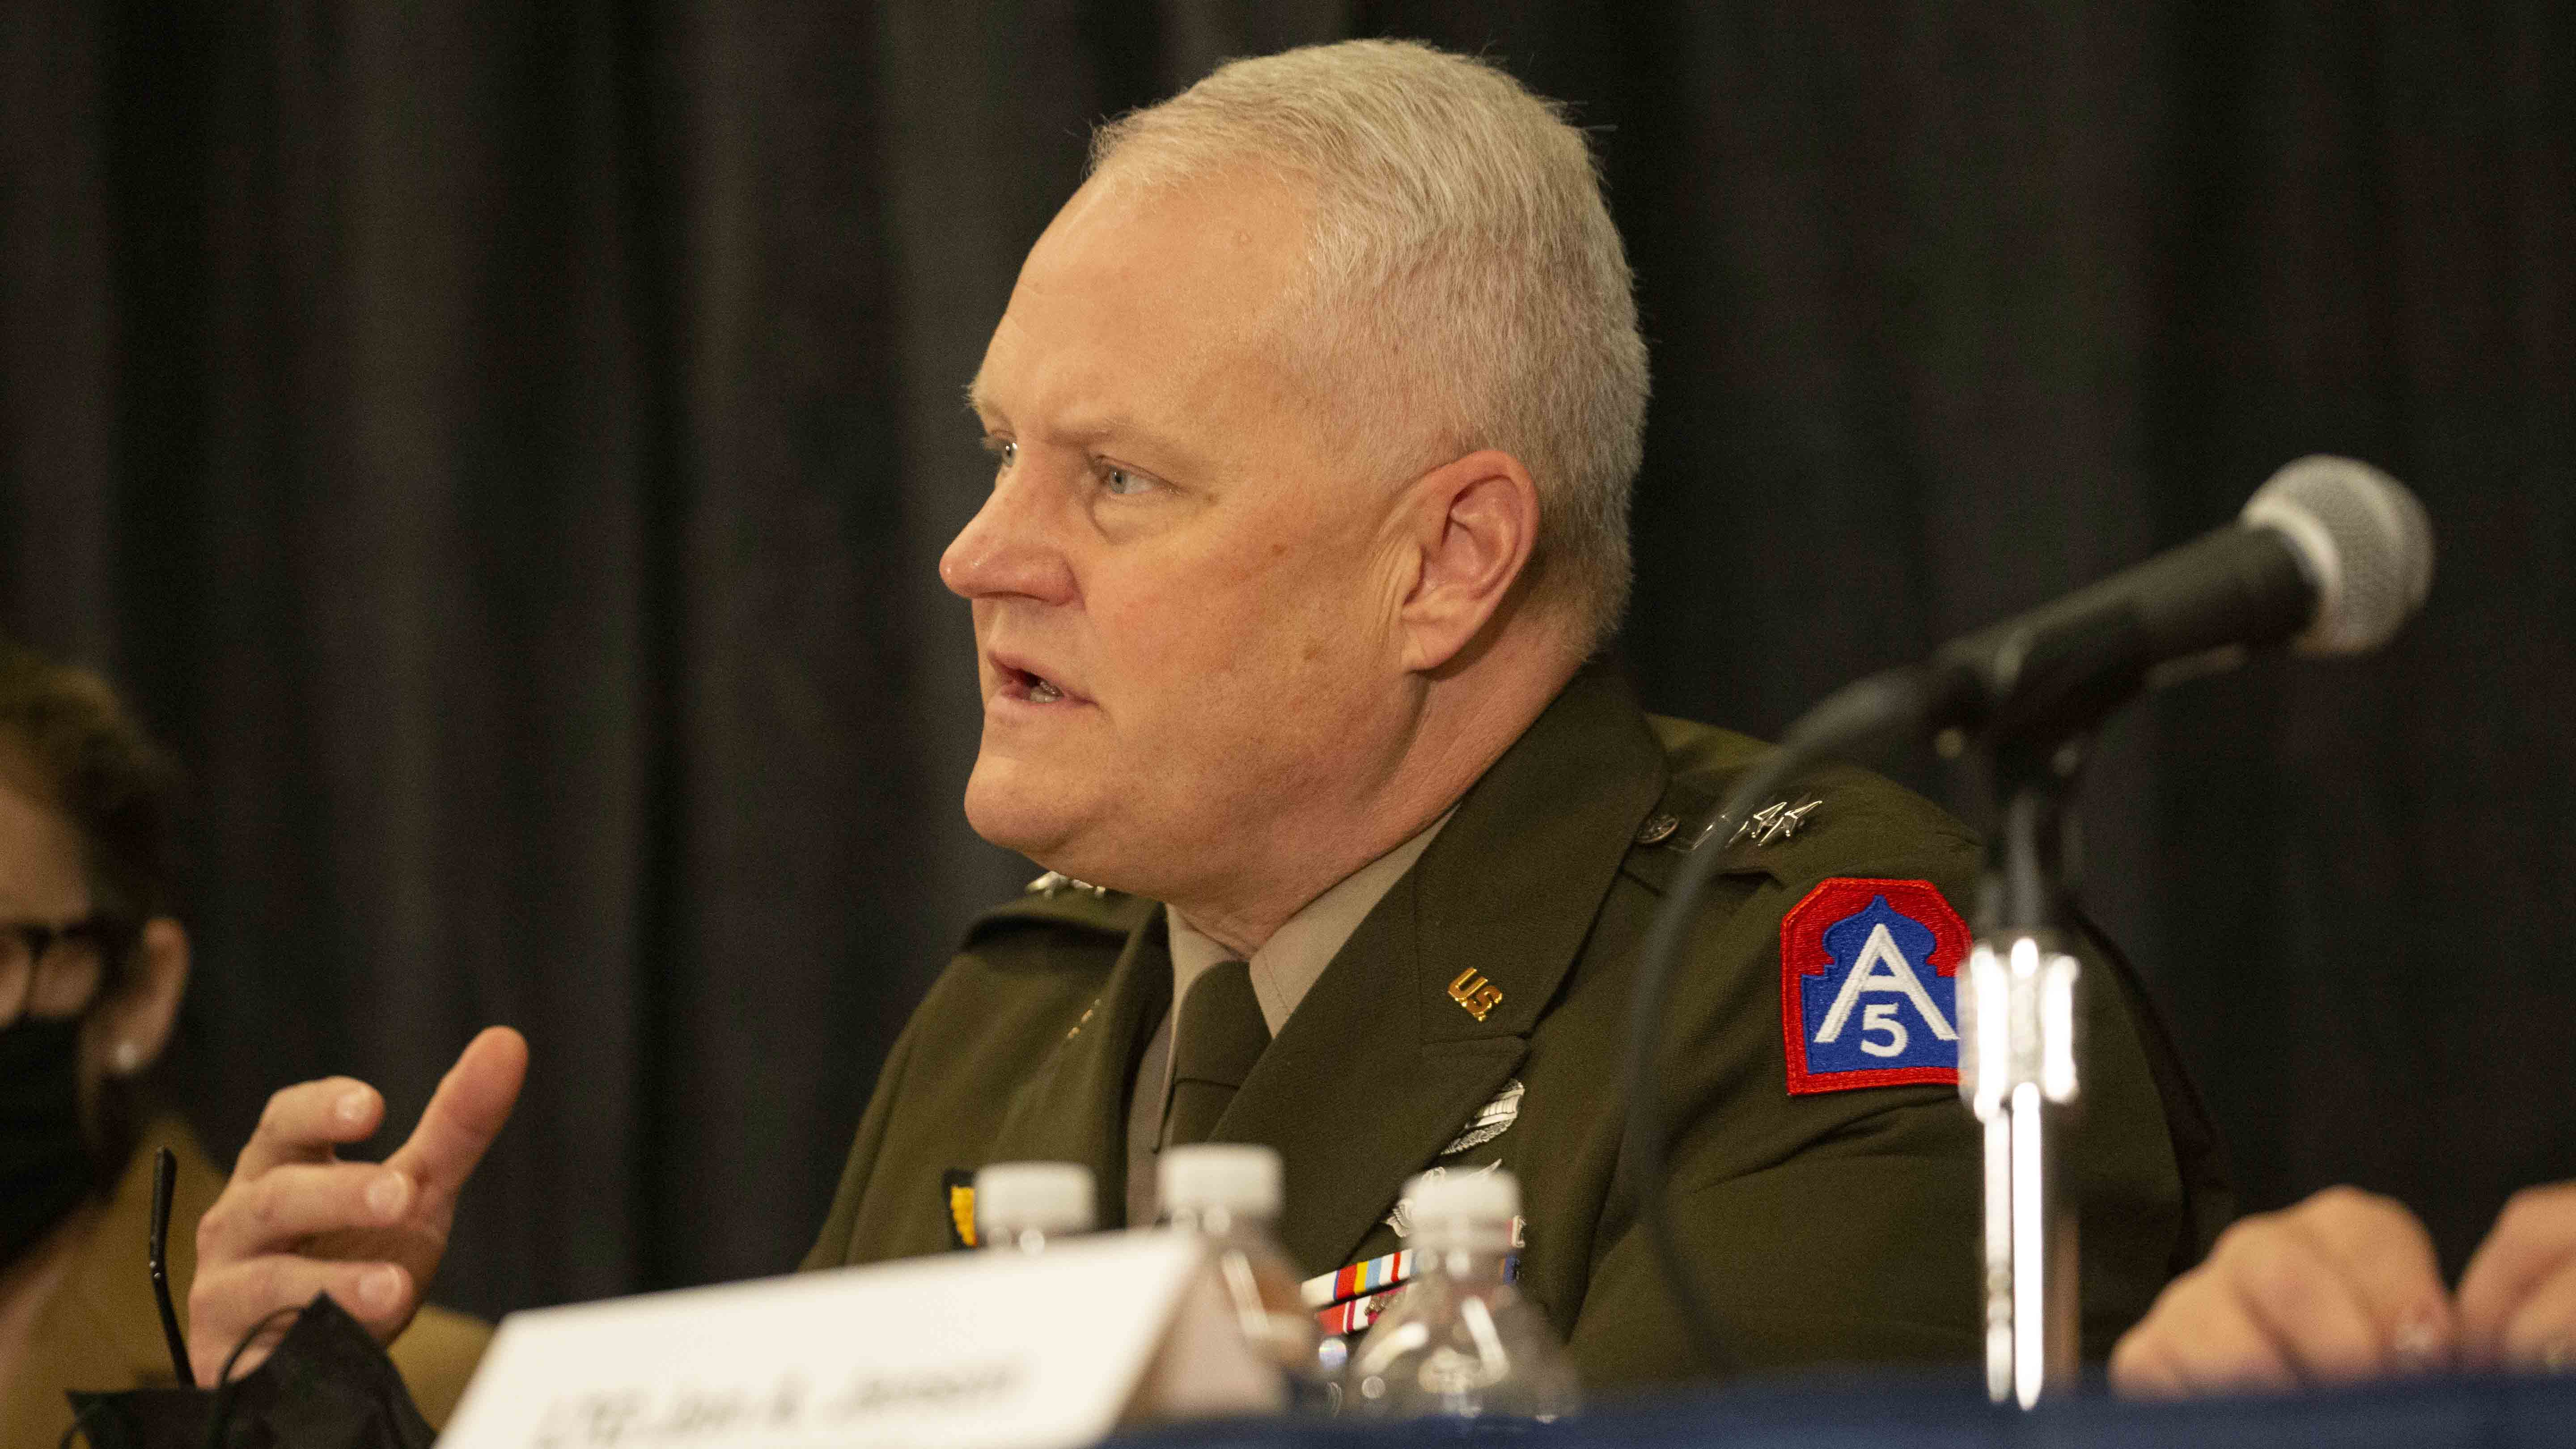 Cooperation Critical to National Security, Resilience